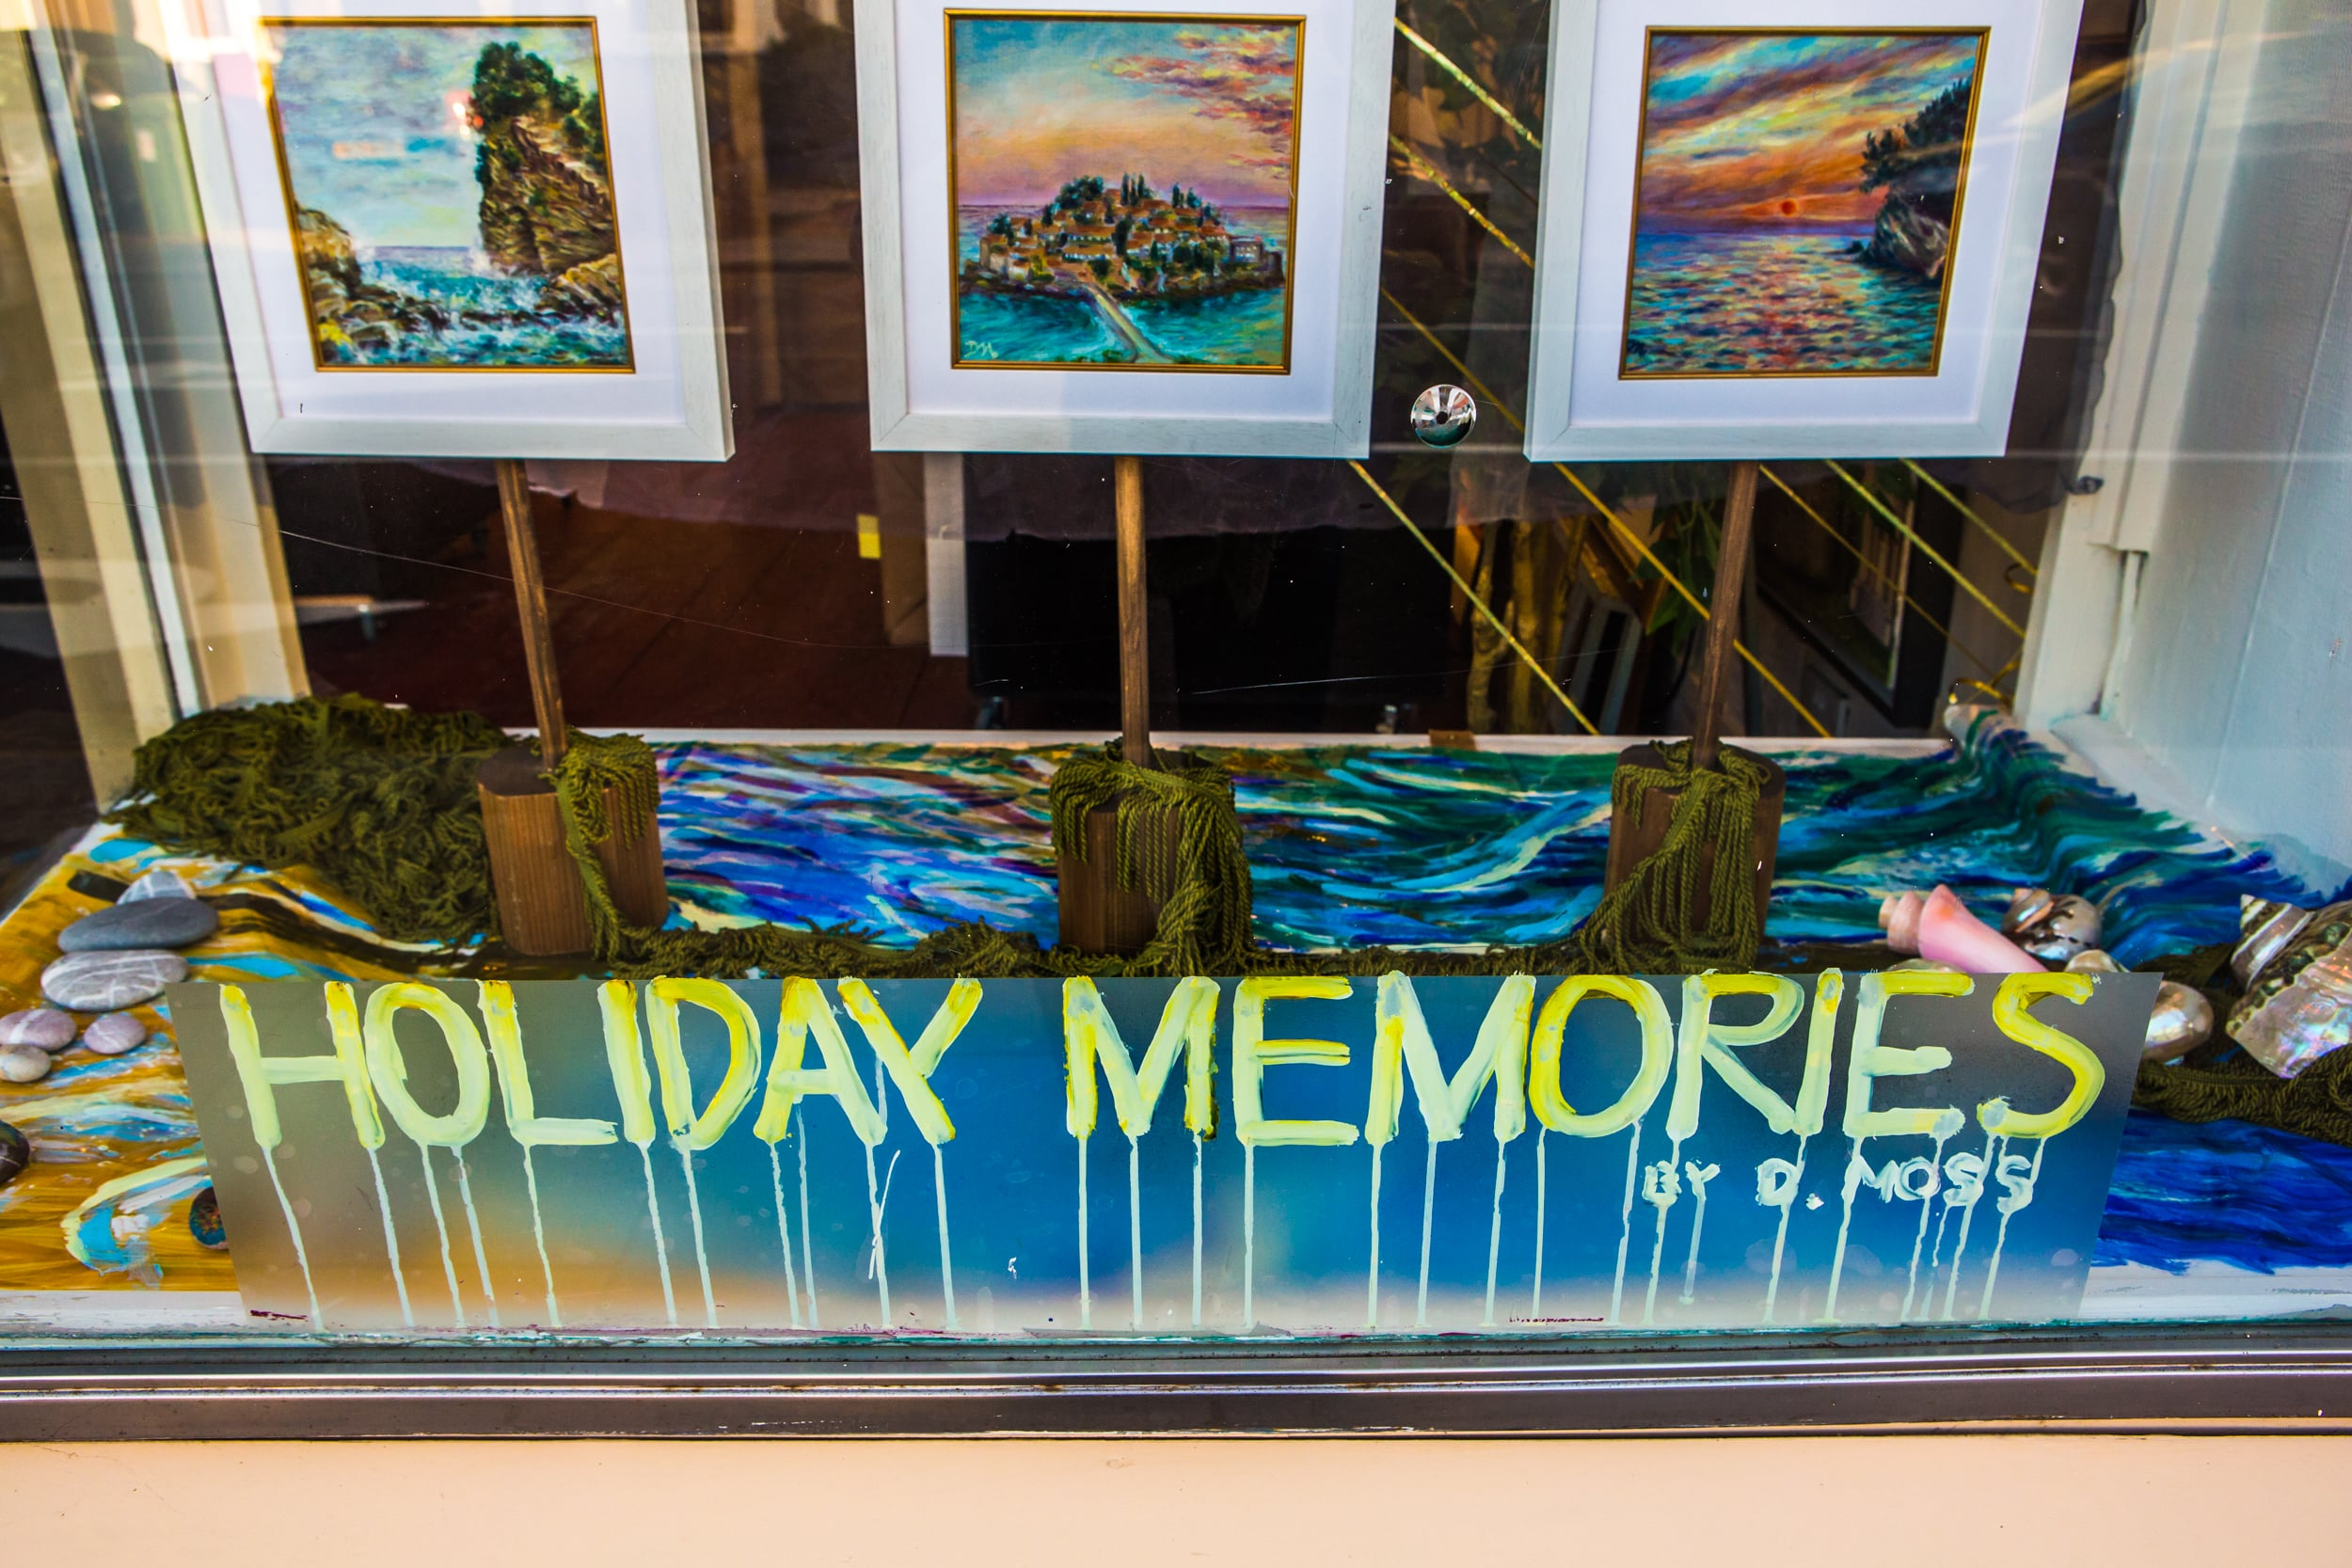 Holiday Memories by Doina Moss, Leigh Gallery, Photo by Cristina Schek (1).jpg